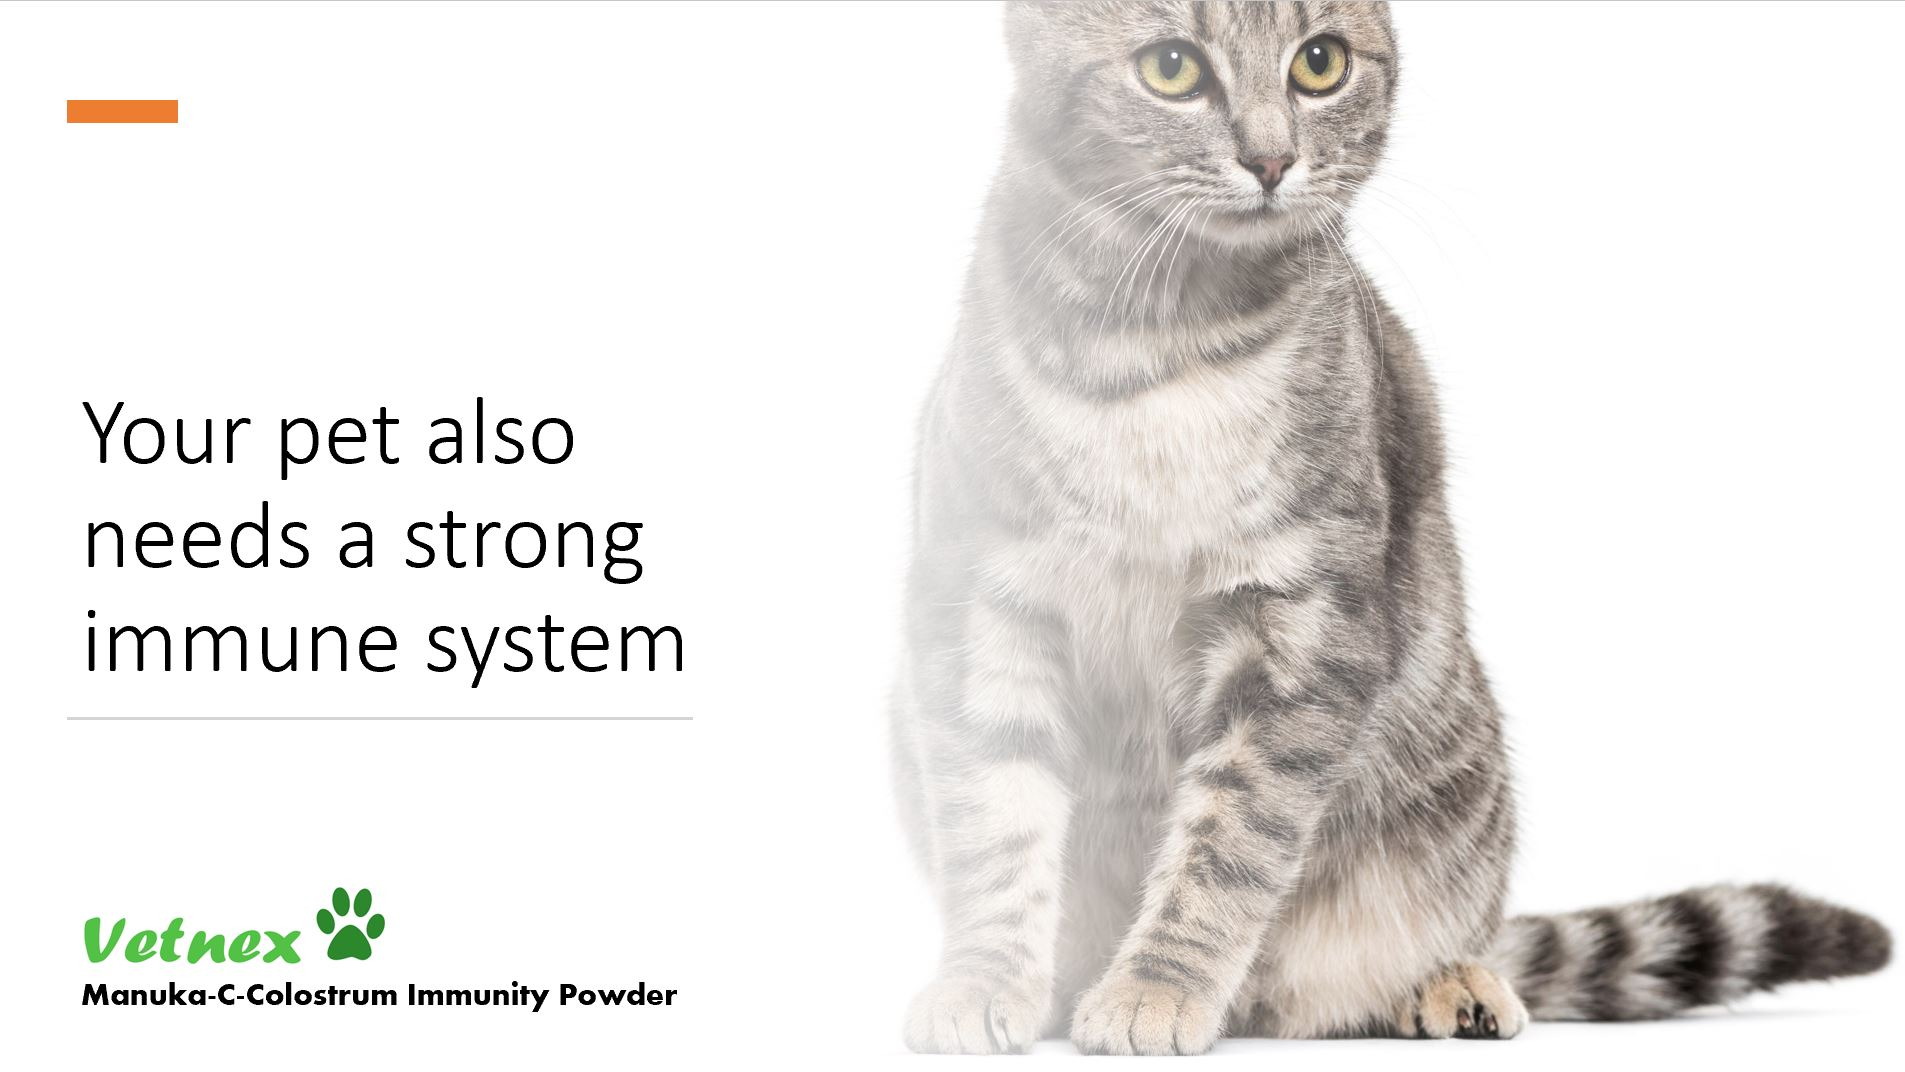 Your Pet Also Needs a Strong Immune System